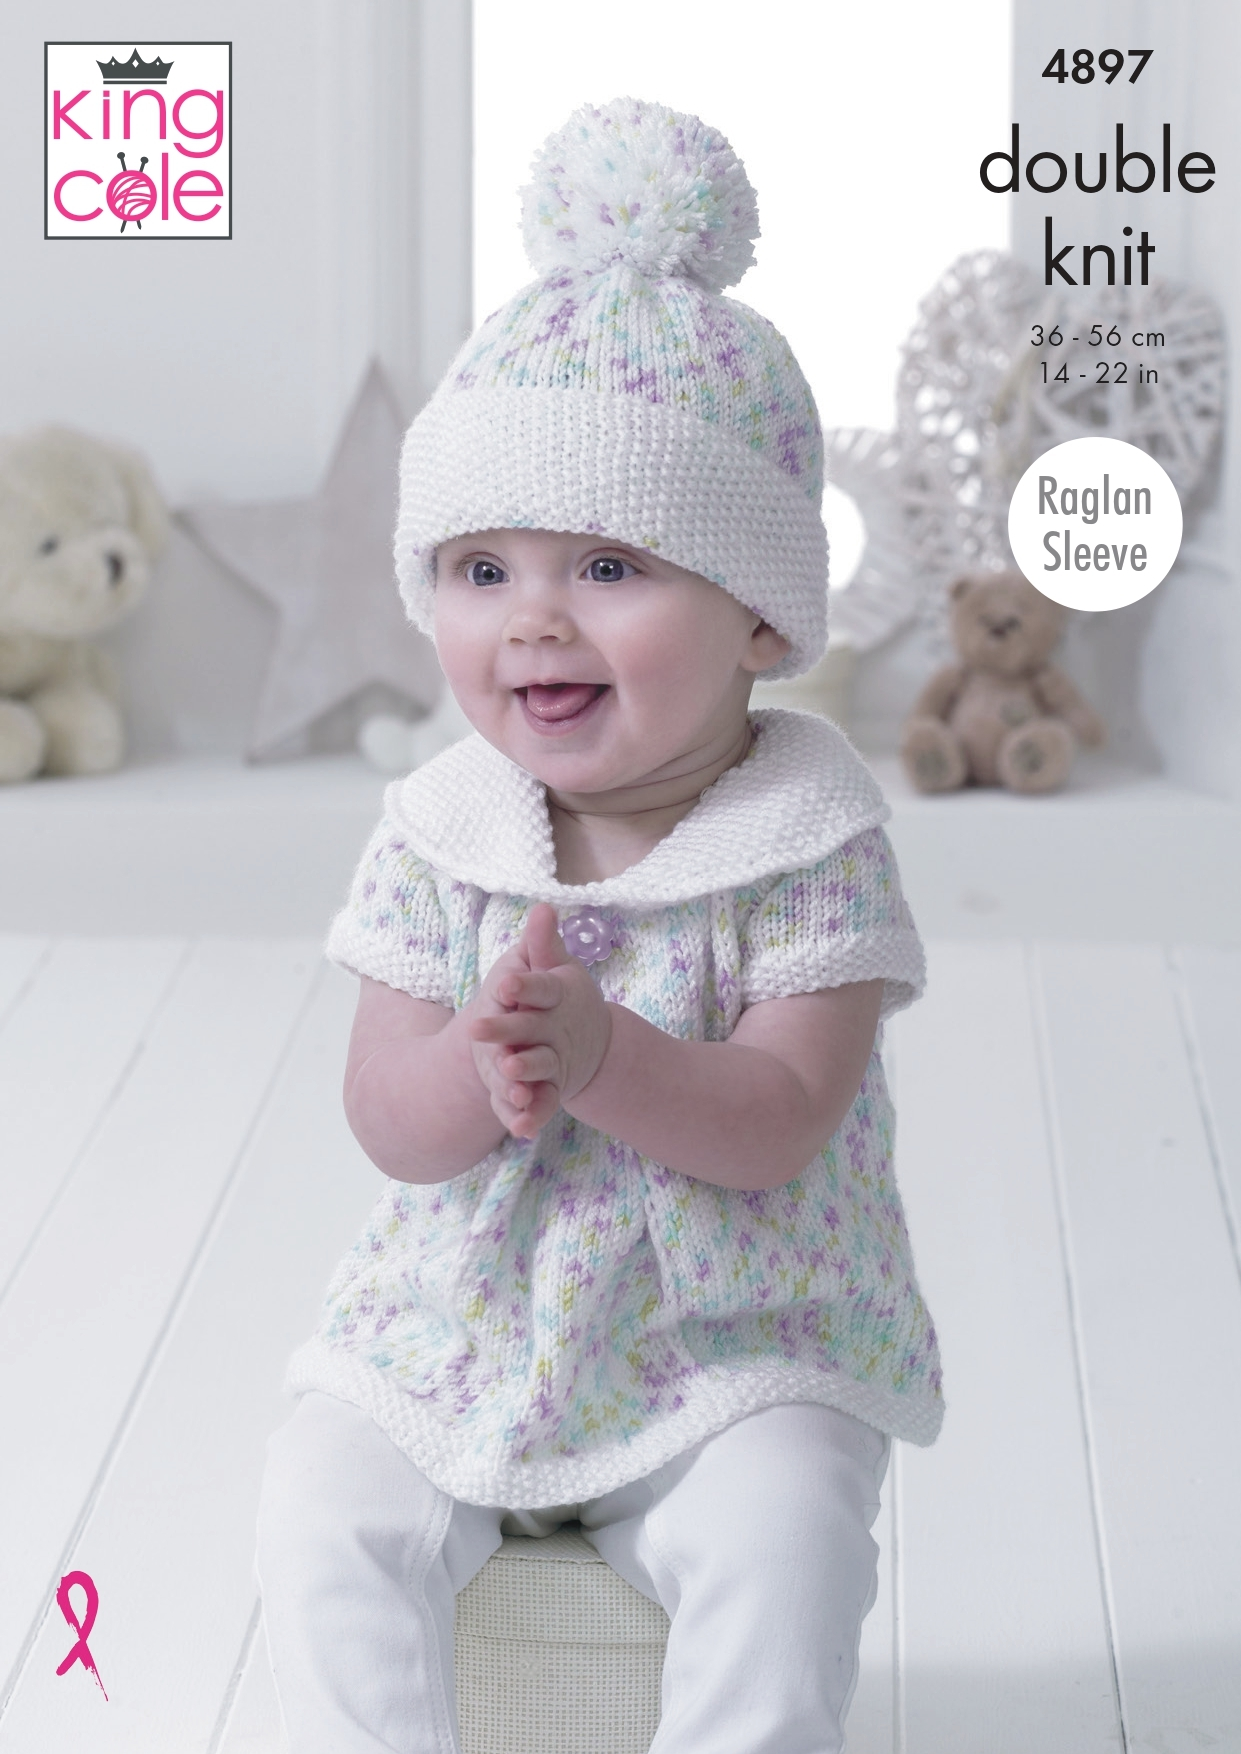 Baby & Toddler Clothing Clothing, Shoes & Accessories Brand New Hand Knitted Children's Hat Age 18-24 Months Clients First